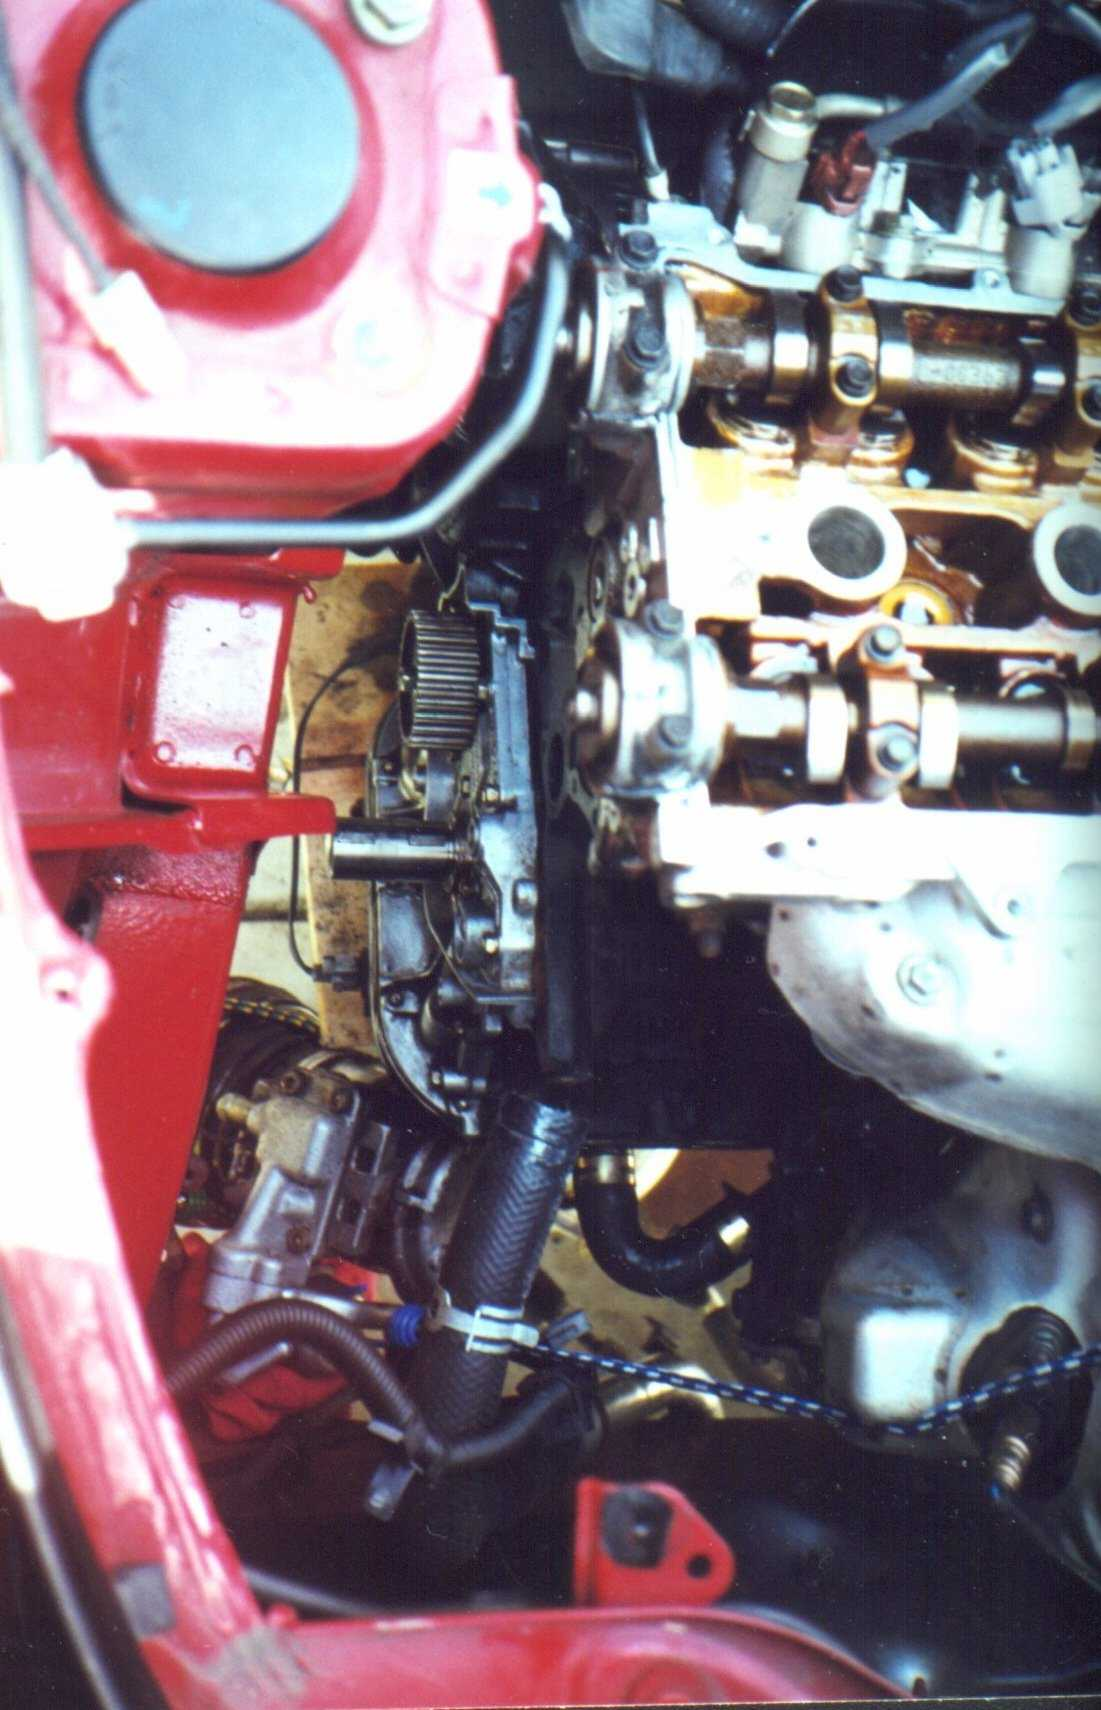 How To Do The Sw20 3s Gte Timing Belt Wiring Diagram 91 Mr2 Turbo Engine Harness For Sale Lotsa Room W Nothing On Motor Huh